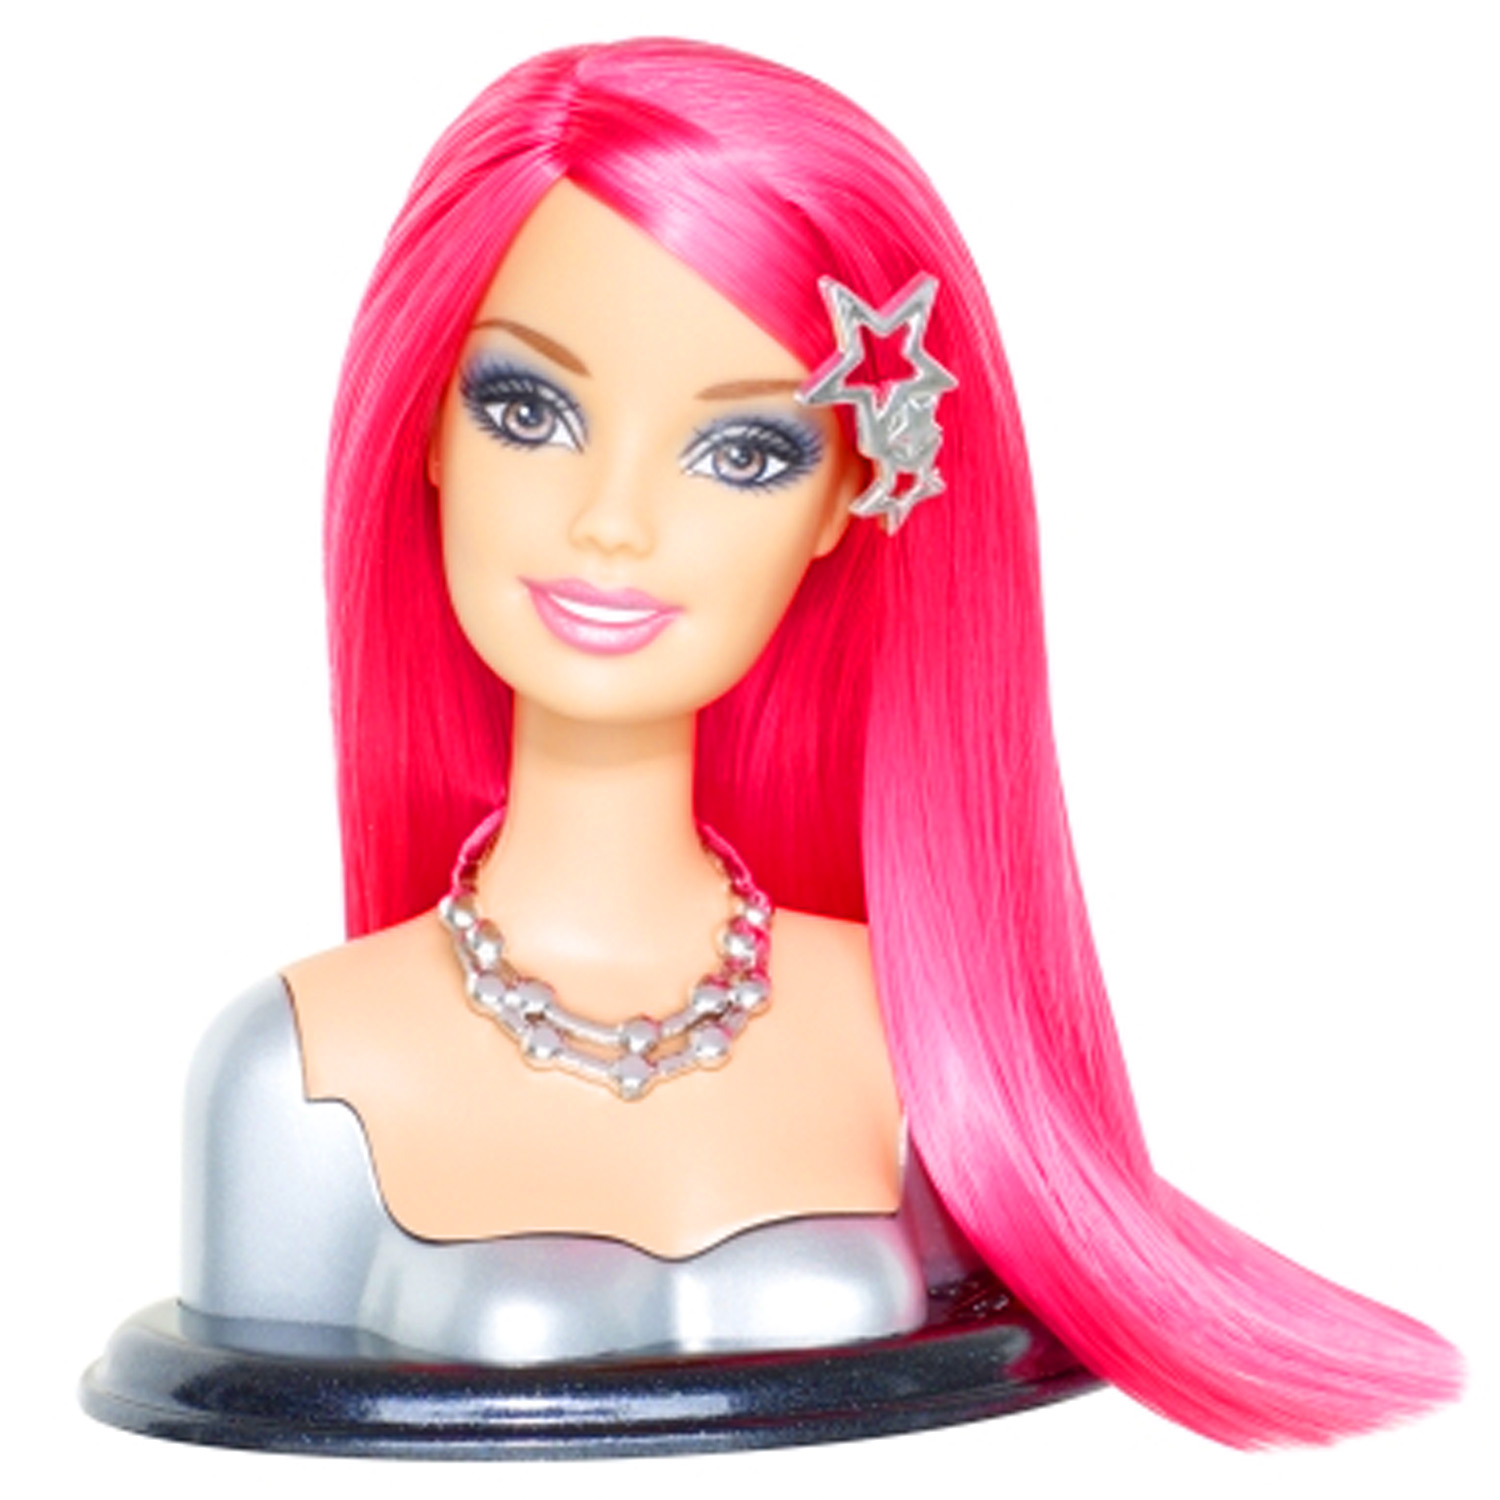 Barbie fashionistas swappin styles heads 17